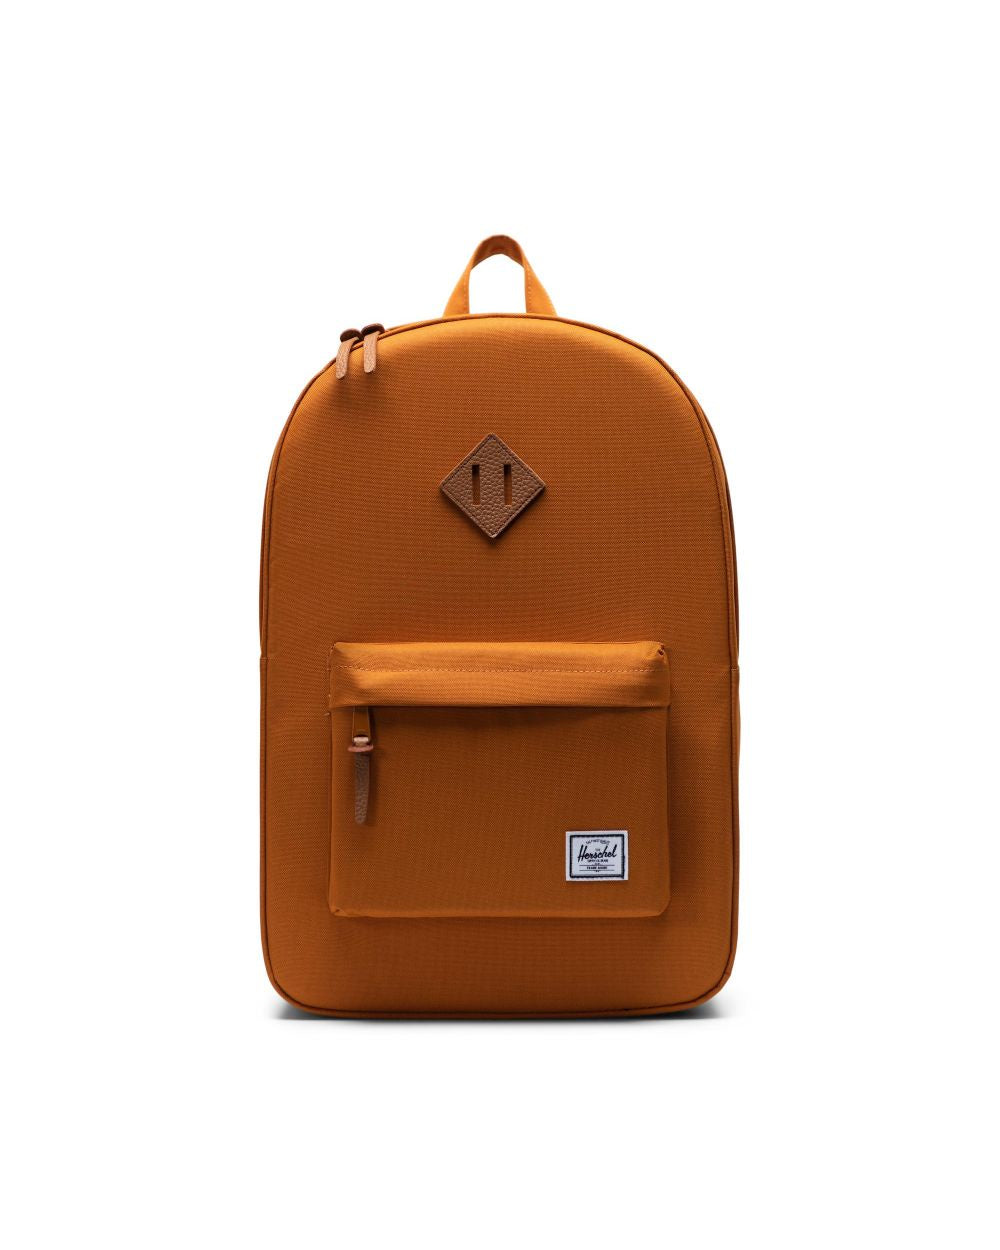 HERSCHEL - HERITAGE BACKPACK IN PUMPKIN SPICE